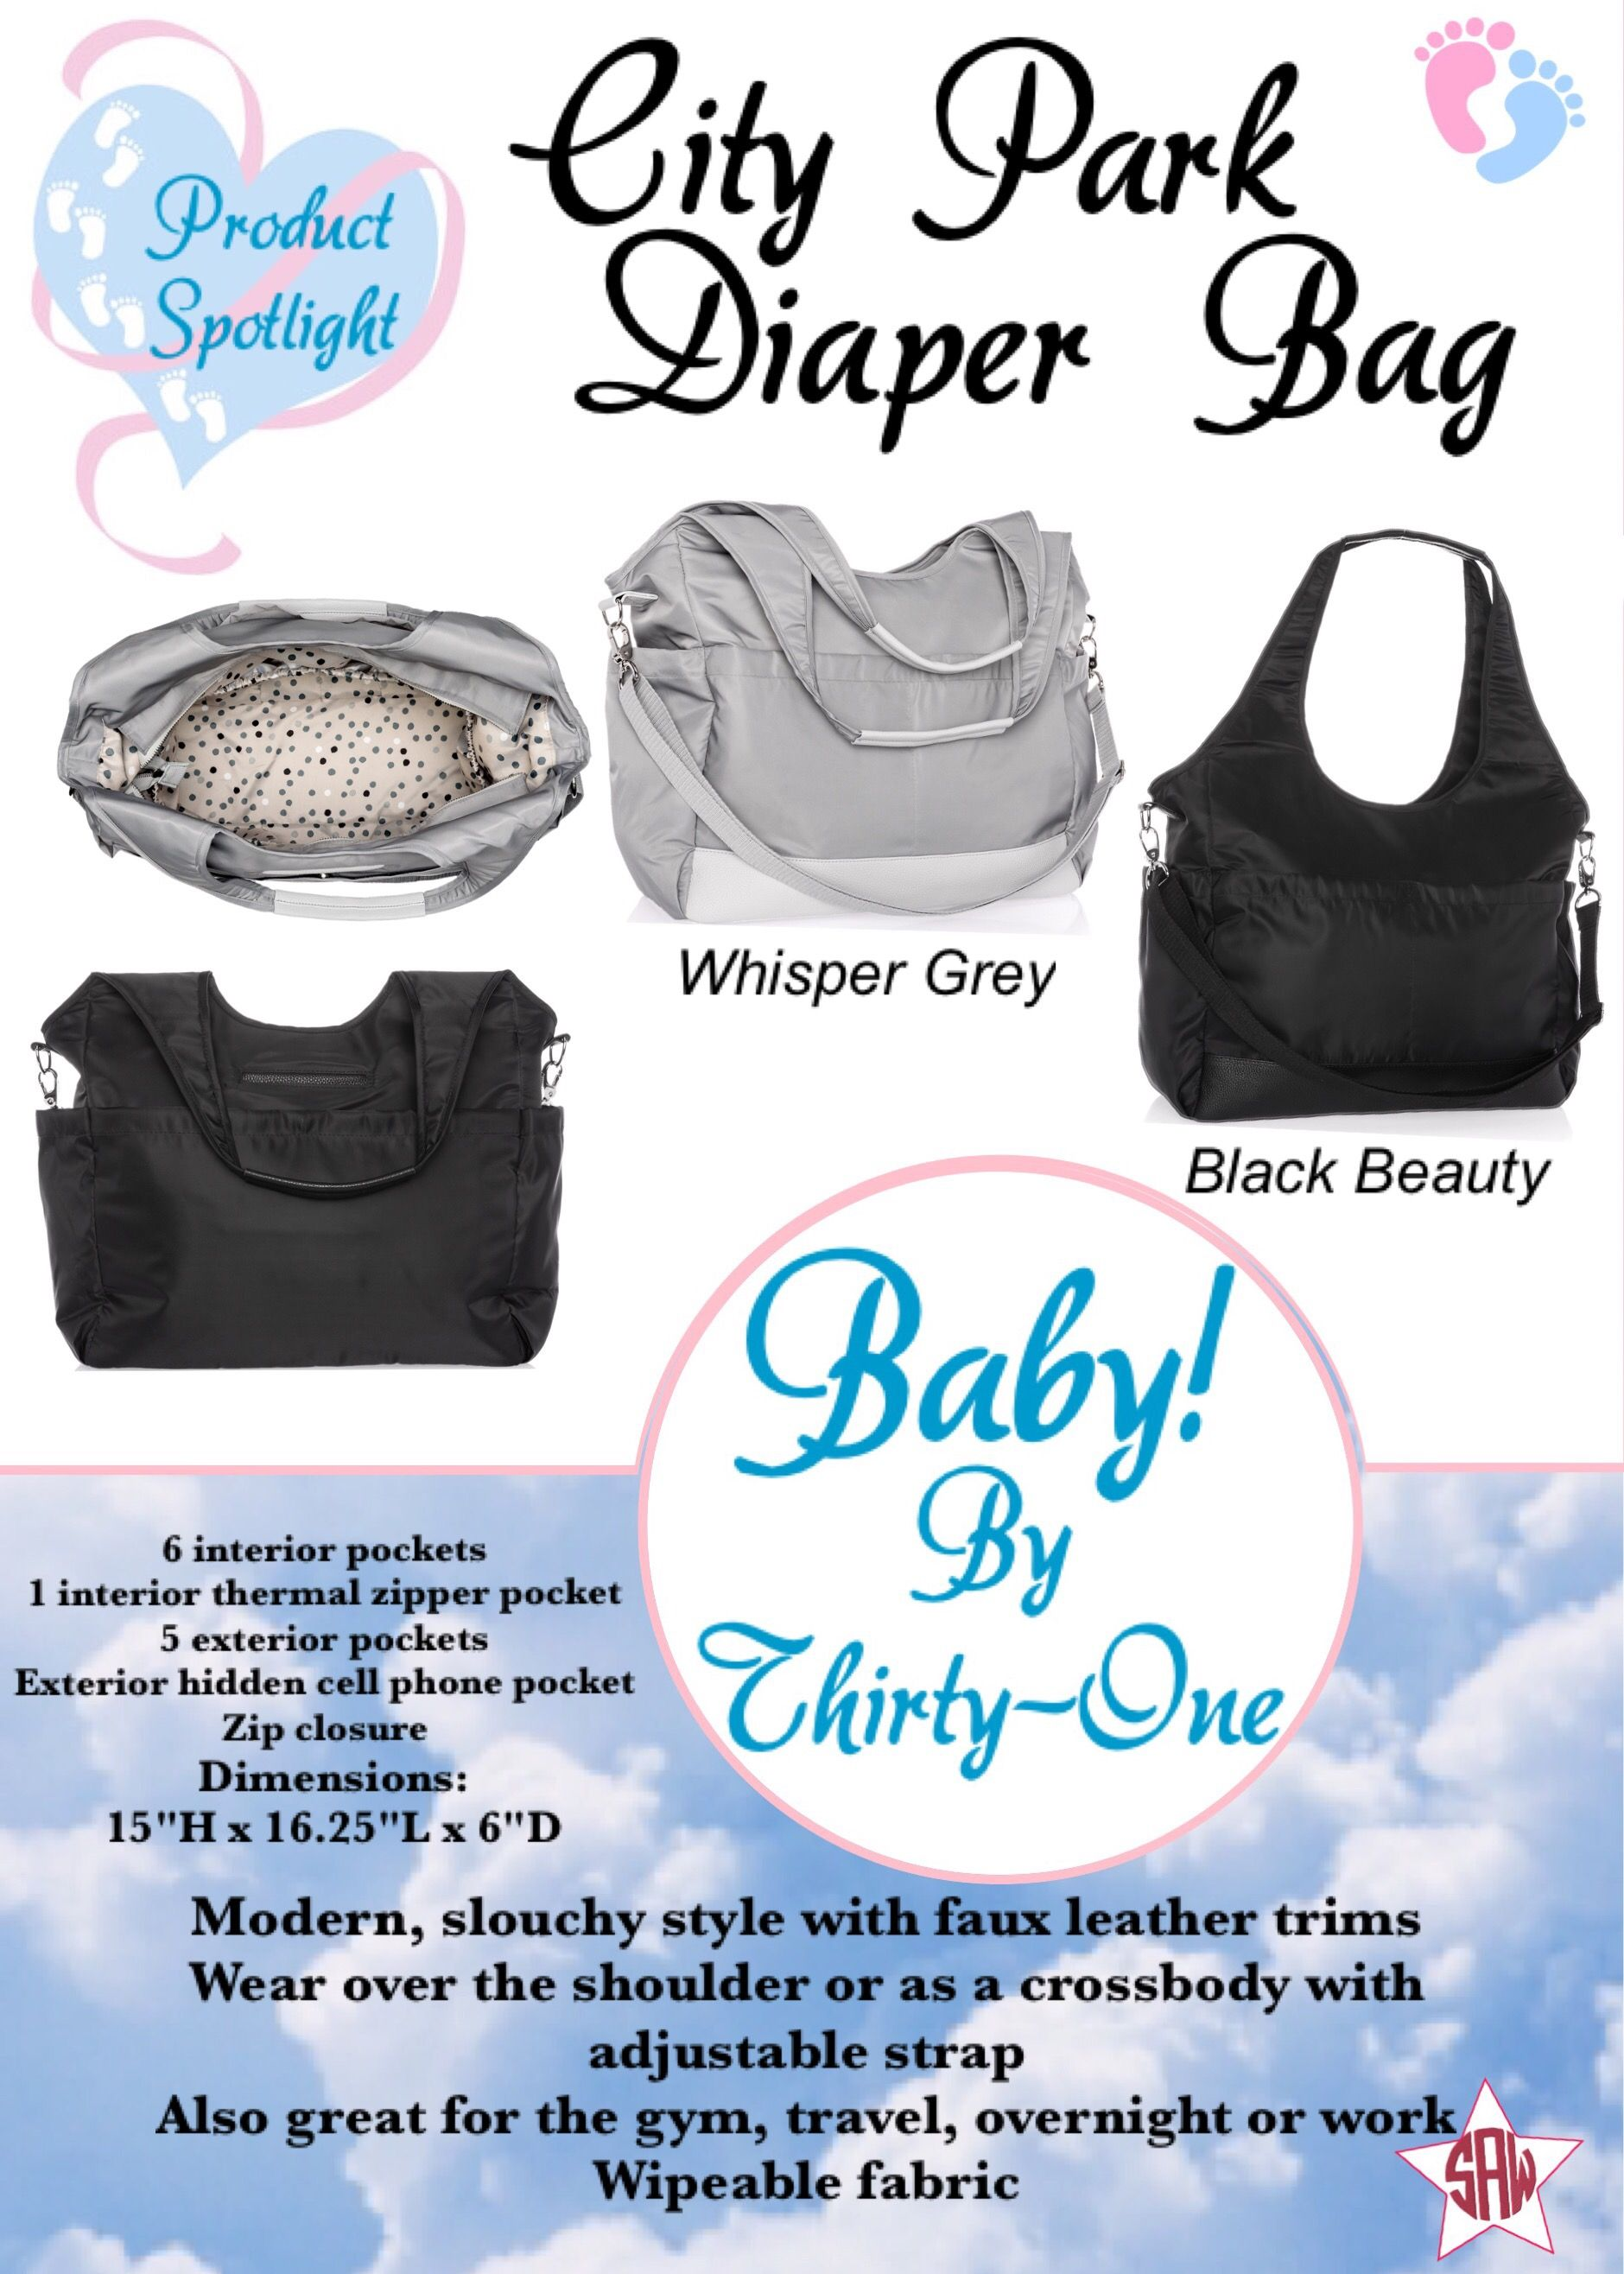 Baby By Thirty One Product Spotlight City Park Diaper Bag Spring Summer 2018 Www Mythirtyone Ca Sabrinawhite